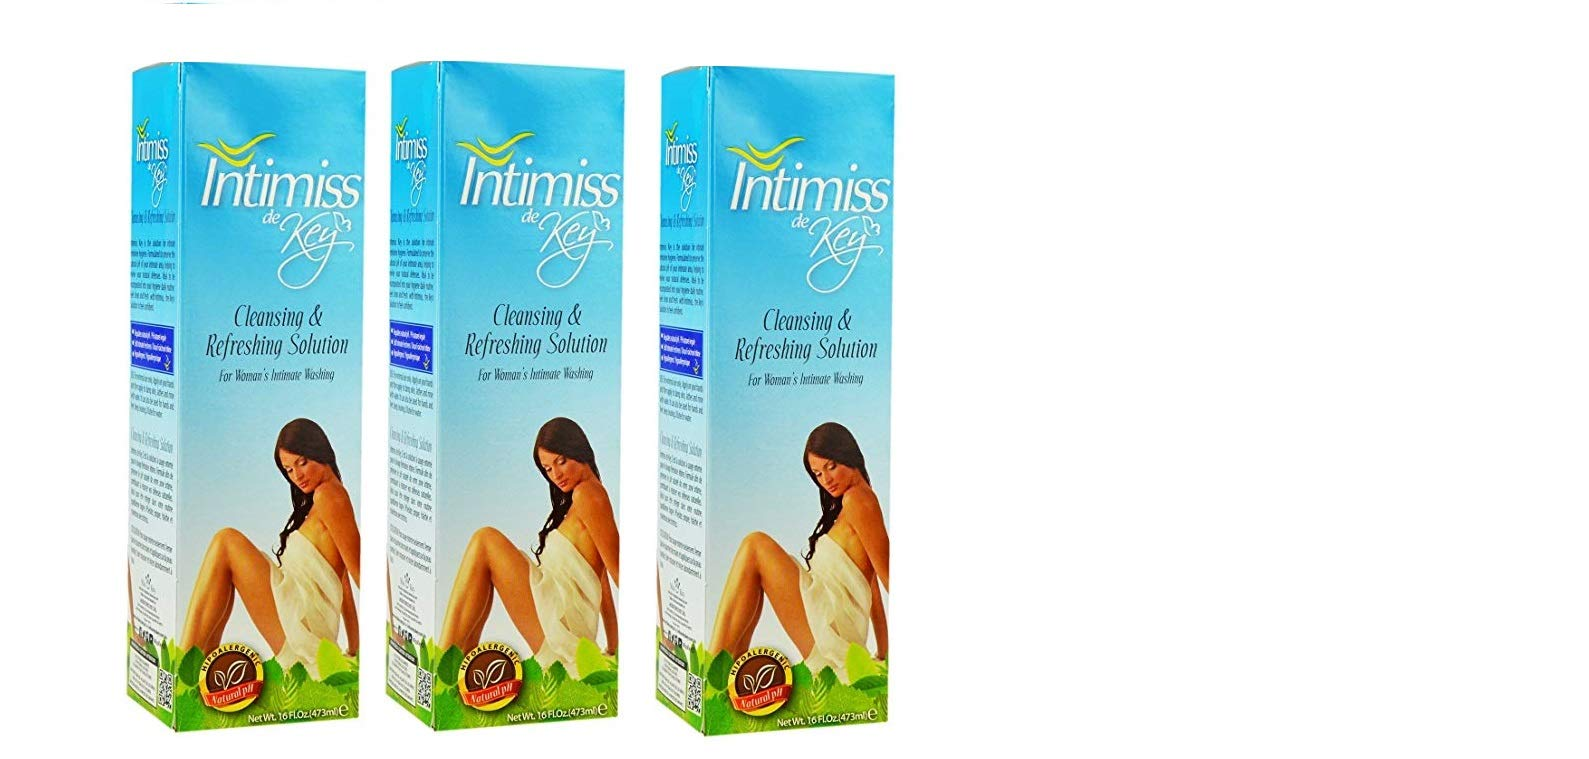 Miss KEY Intimiss De Key Cleaning and Refreshing Solution 16 oz (3PCS) by Miss Key